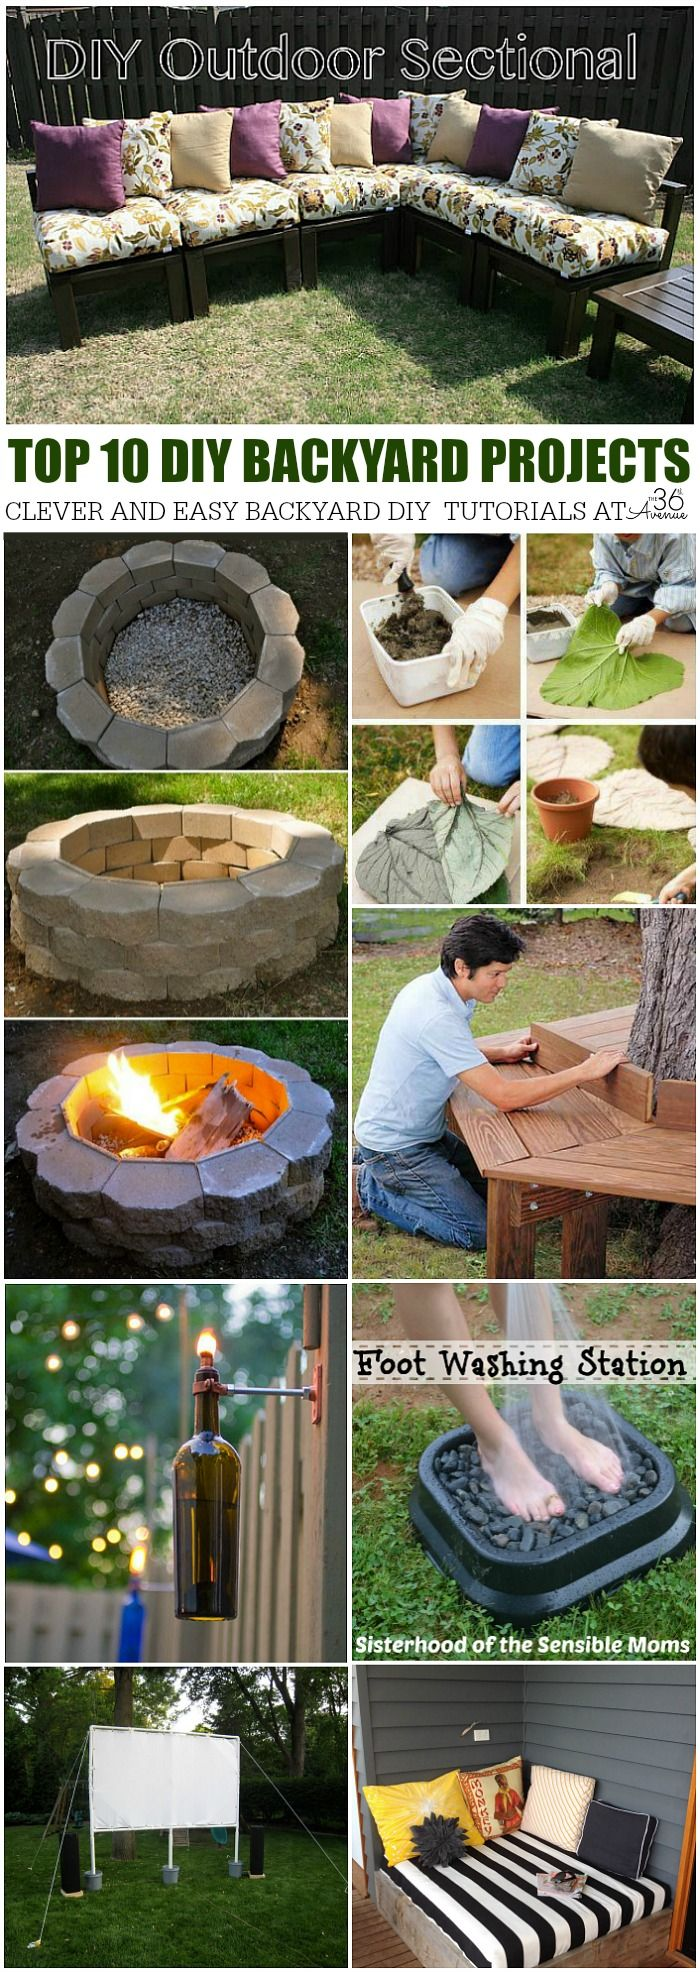 Top 10 DIY Backyard Projects